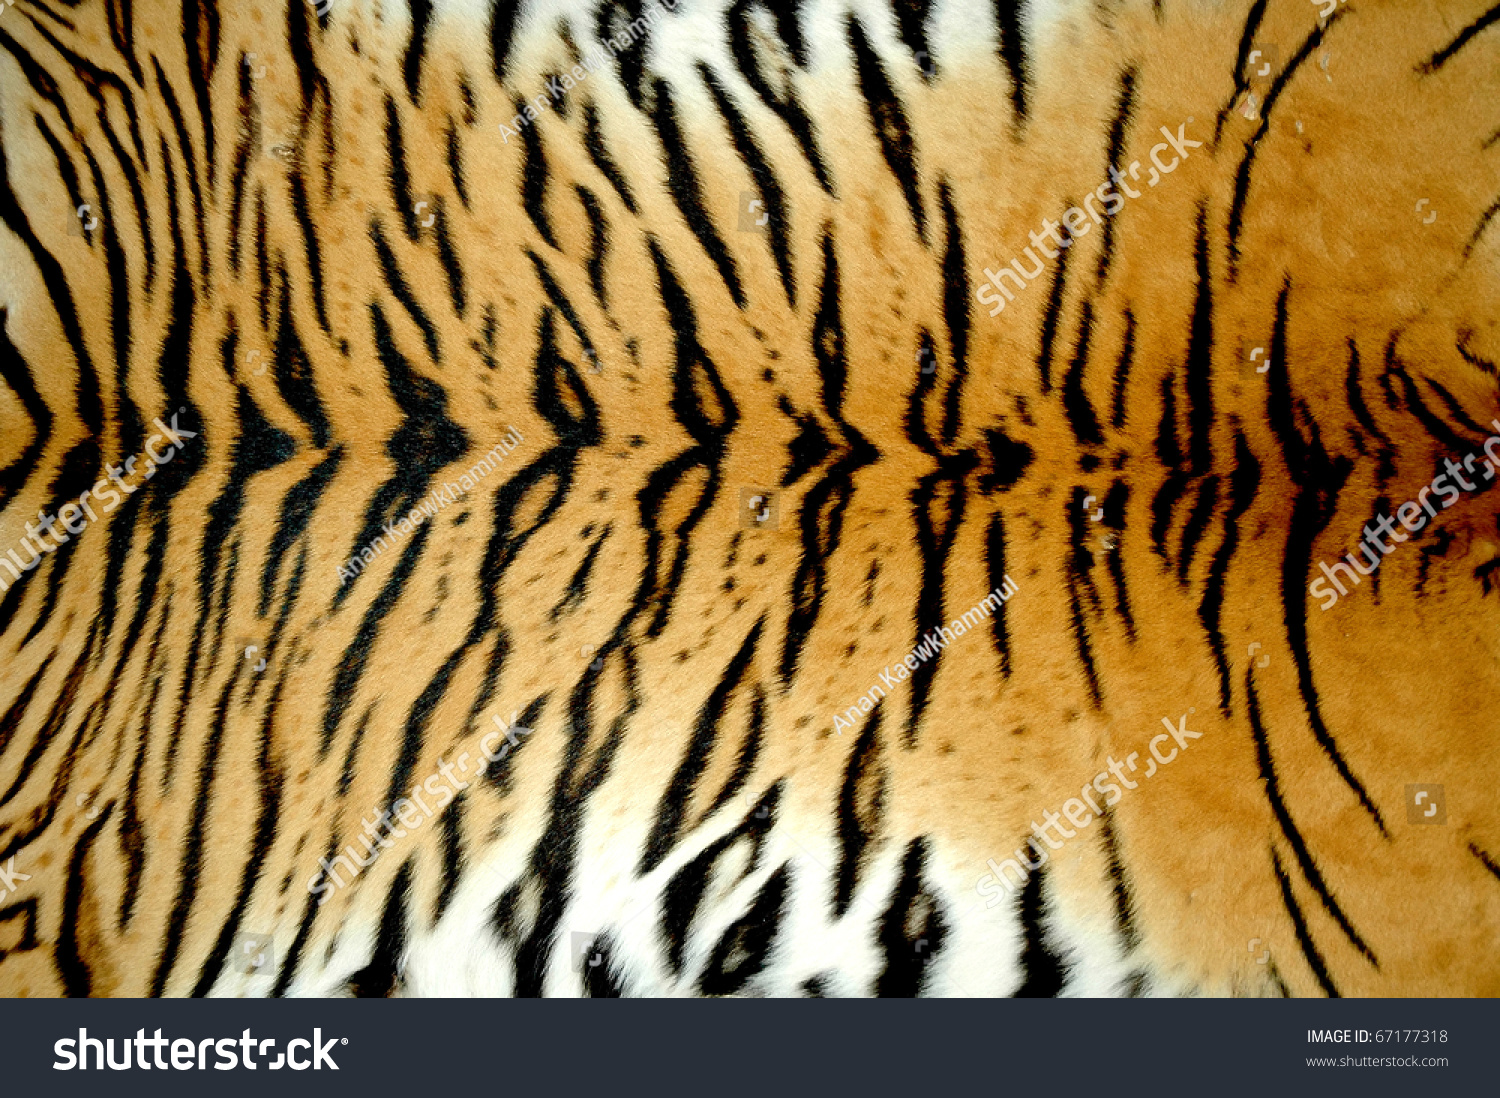 Texture Of Real Tiger Skin ( Fur ) Stock Photo 67177318 ... - photo#5